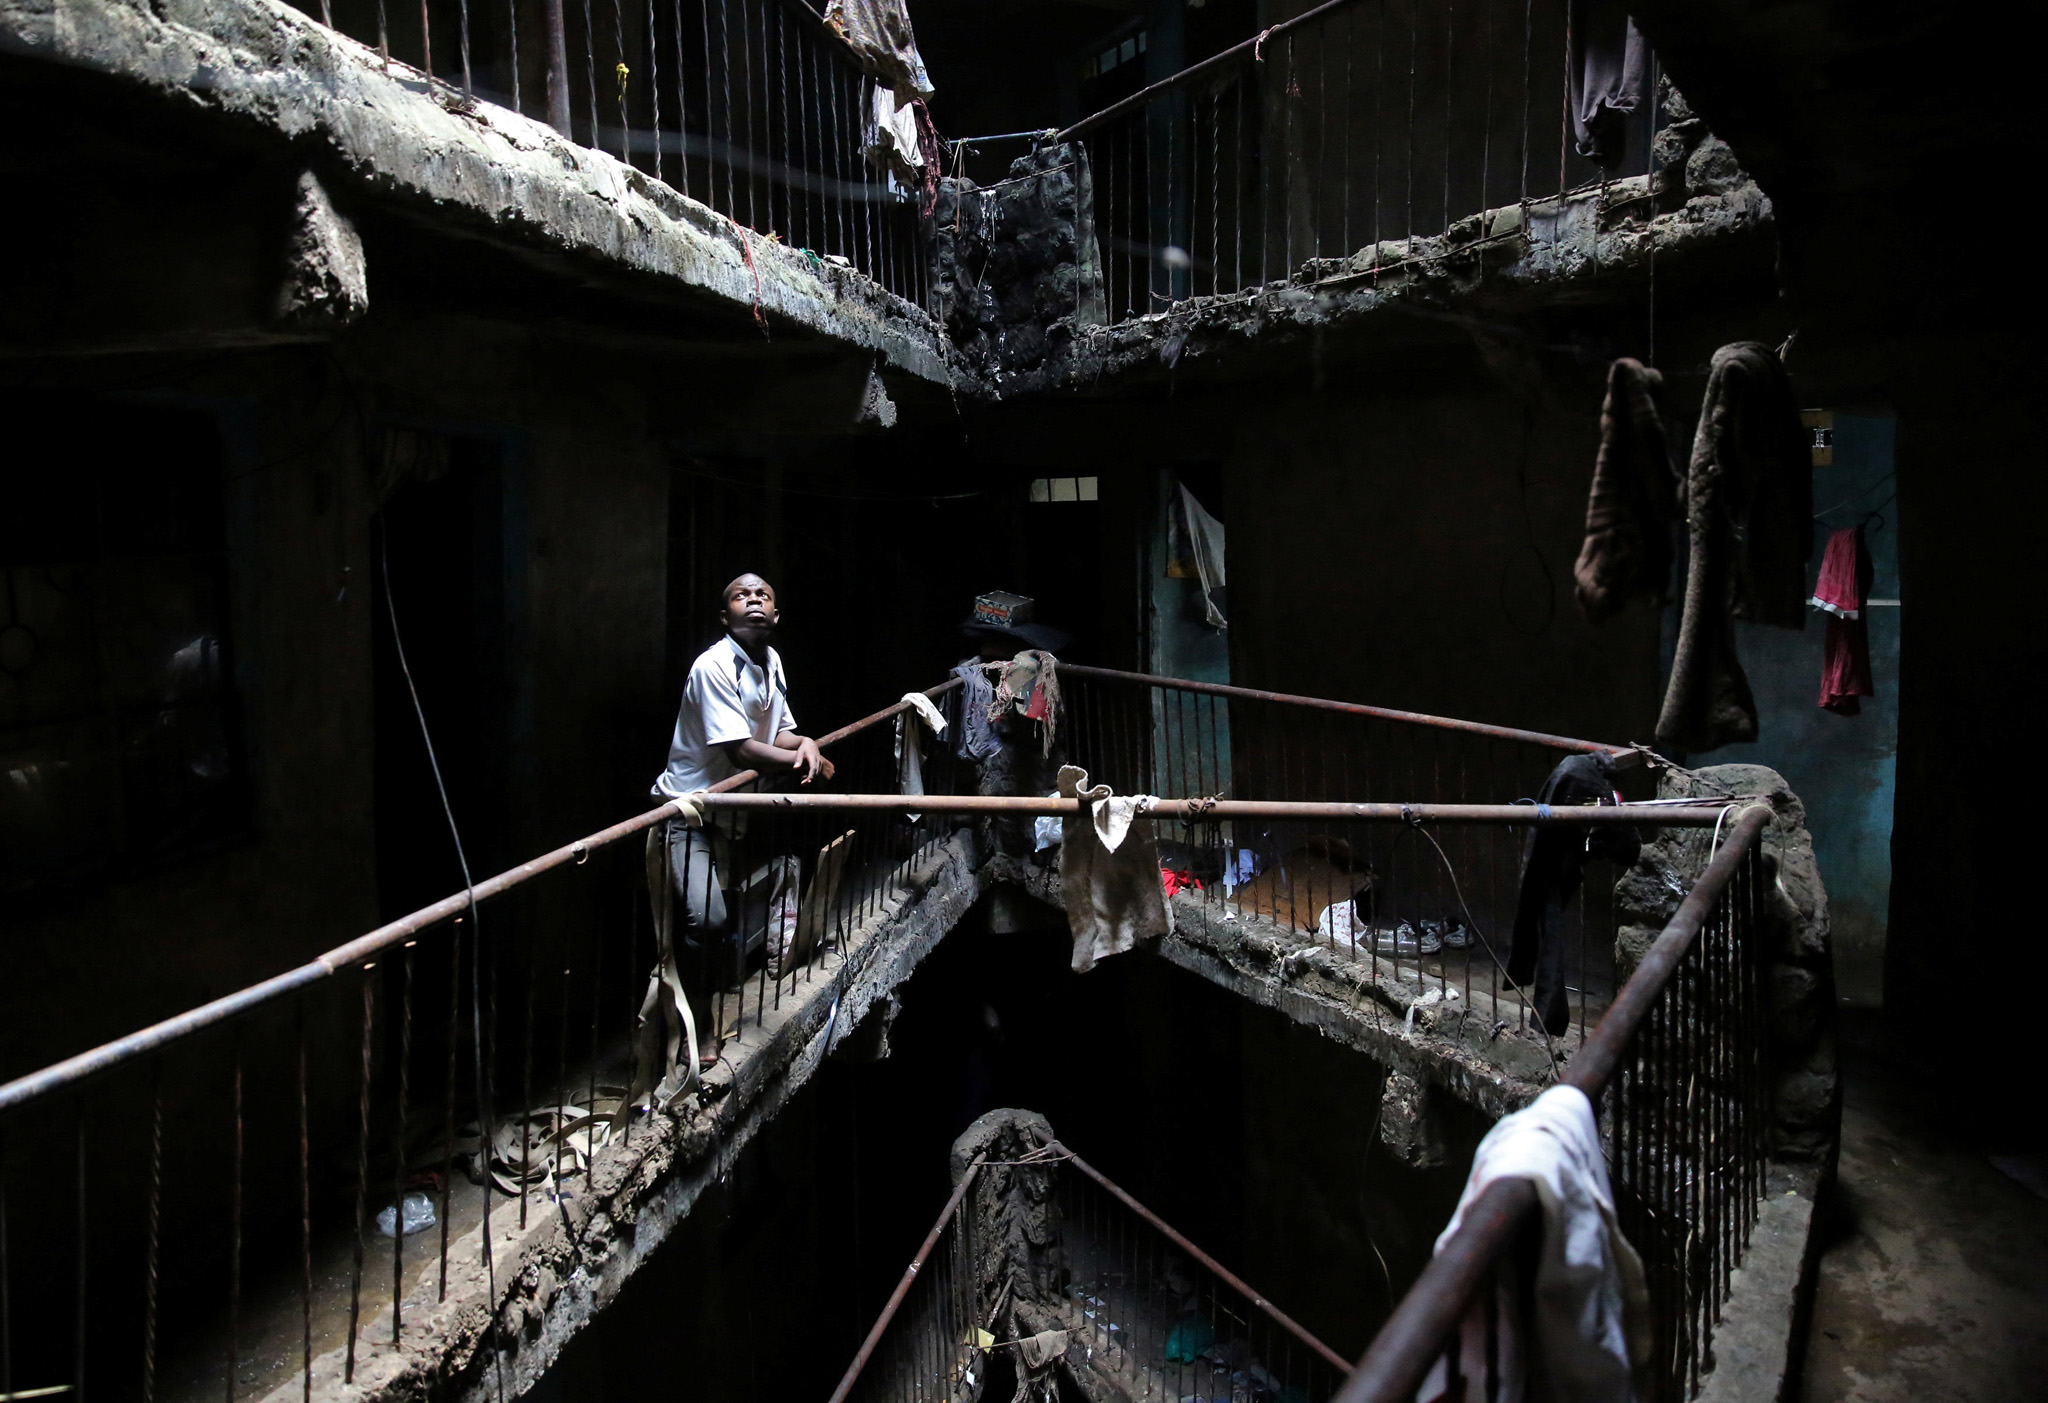 "A man stands in a building earmarked for demolition in the Mathare neighbourhood of Nairobi, Kenya, May 17, 2016. Kenya's authorities tore down a badly built residential block in the poor Nairobi district on Tuesday, one of more than 250 shoddy buildings that could now face demolition after a six-story structure collapsed this month killing 51 people. REUTERS/Goran Tomasevic SEARCH ""MATHARE DEMOLITION"" FOR THIS STORY. SEARCH ""THE WIDER IMAGE"" FOR ALL STORIES   TPX IMAGES OF THE DAY"